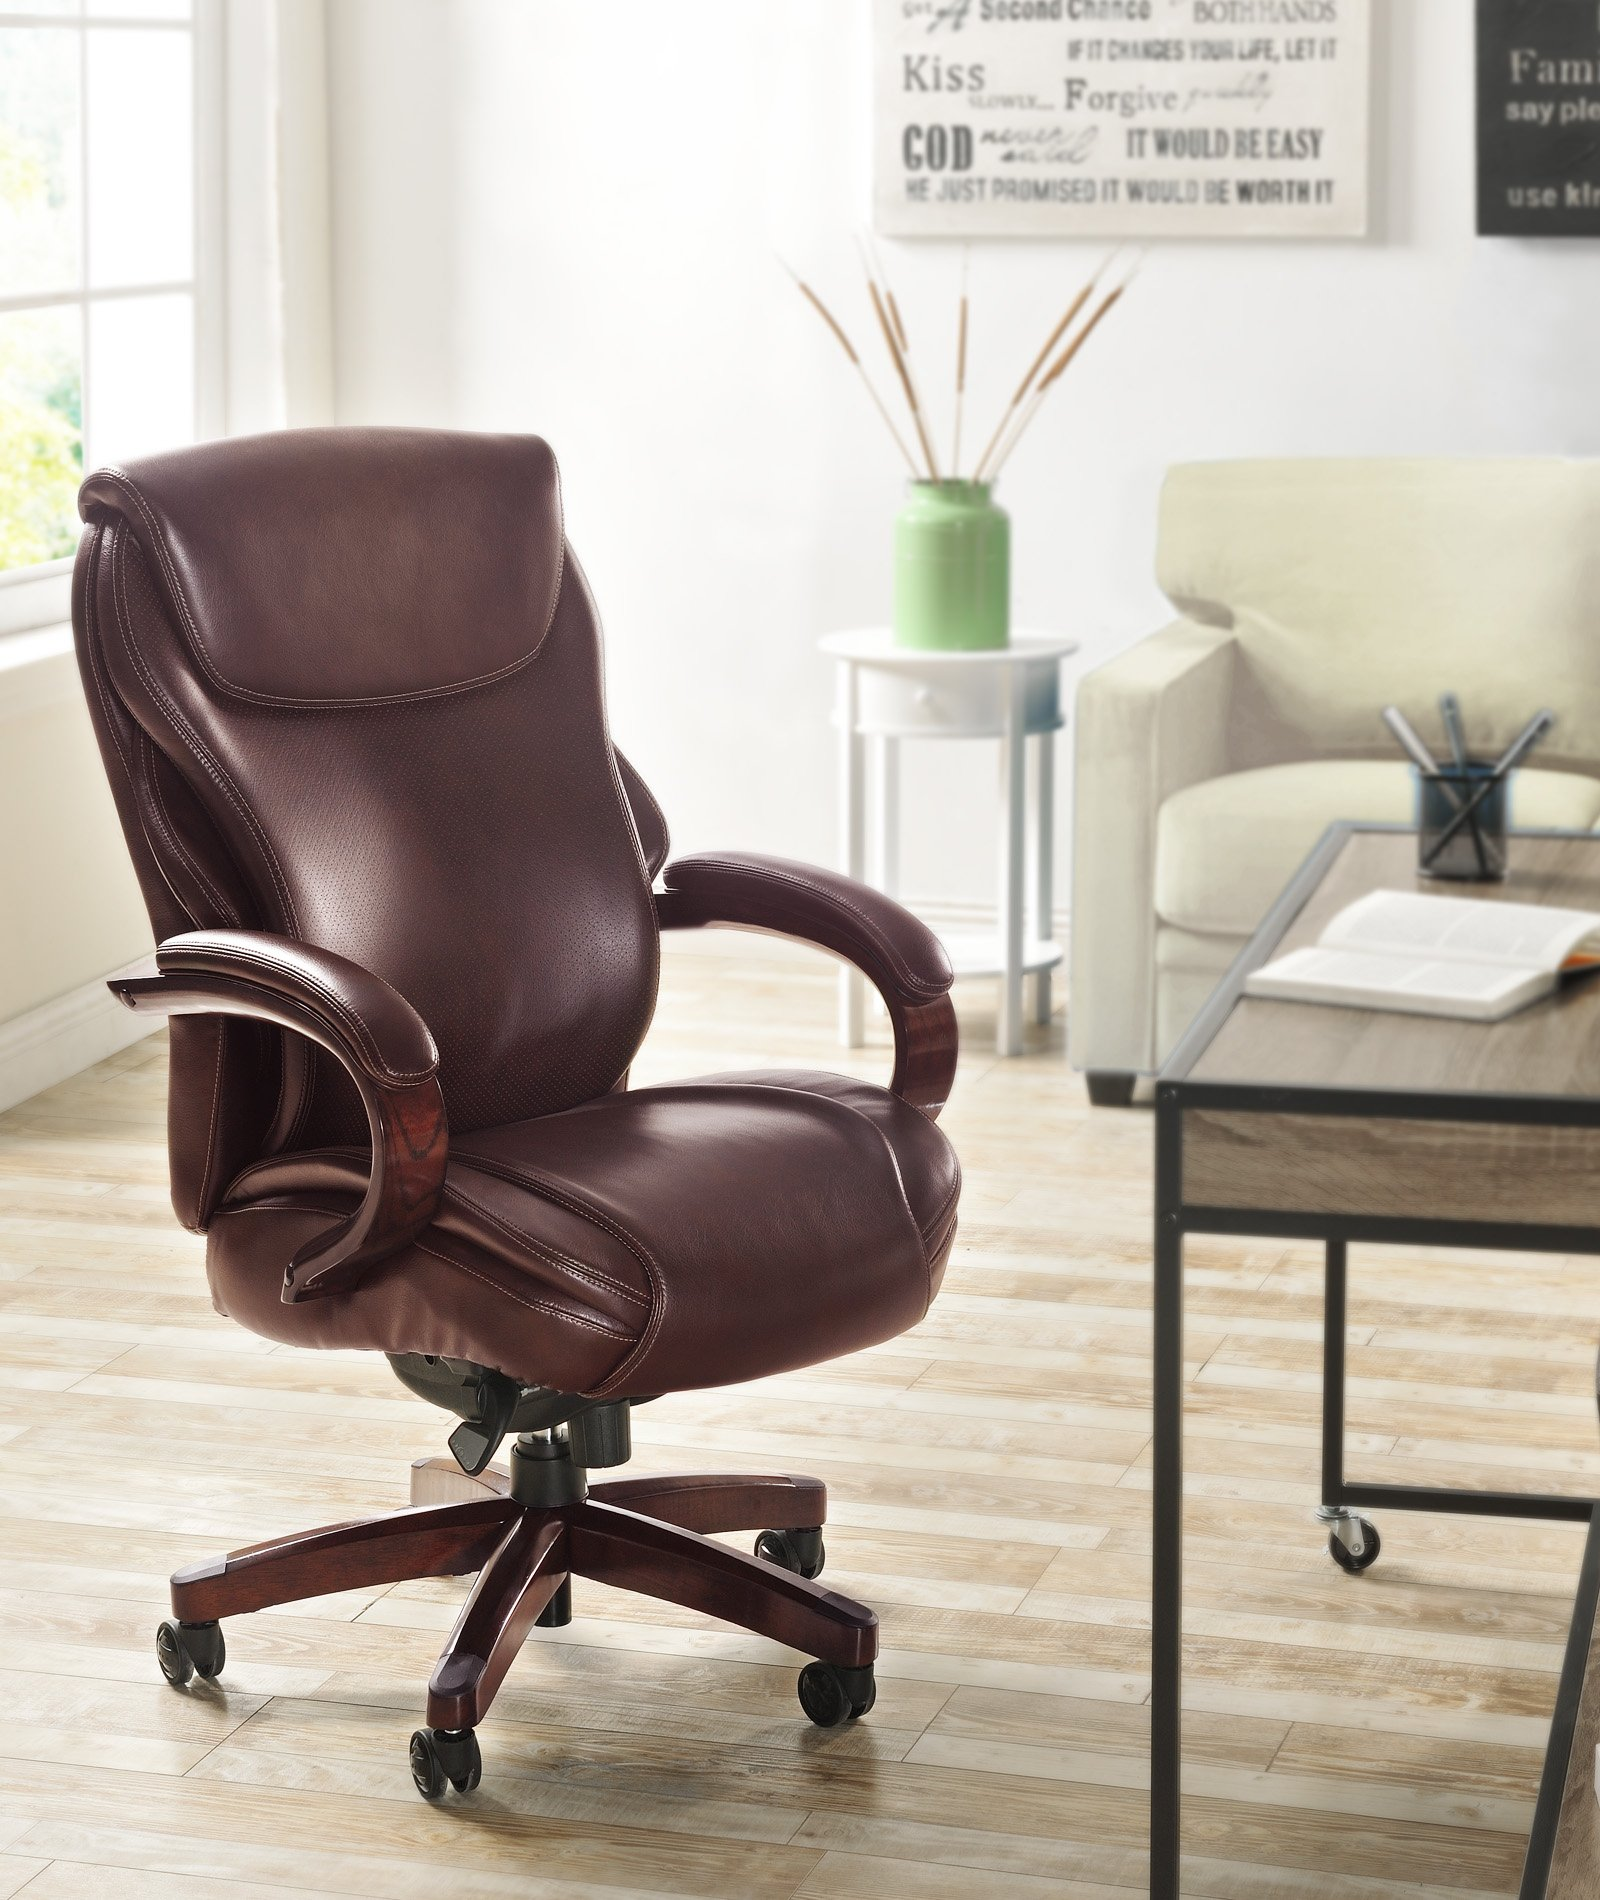 La-Z-Boy Hyland Executive Bonded Leather Office Chair, Coffee Brown